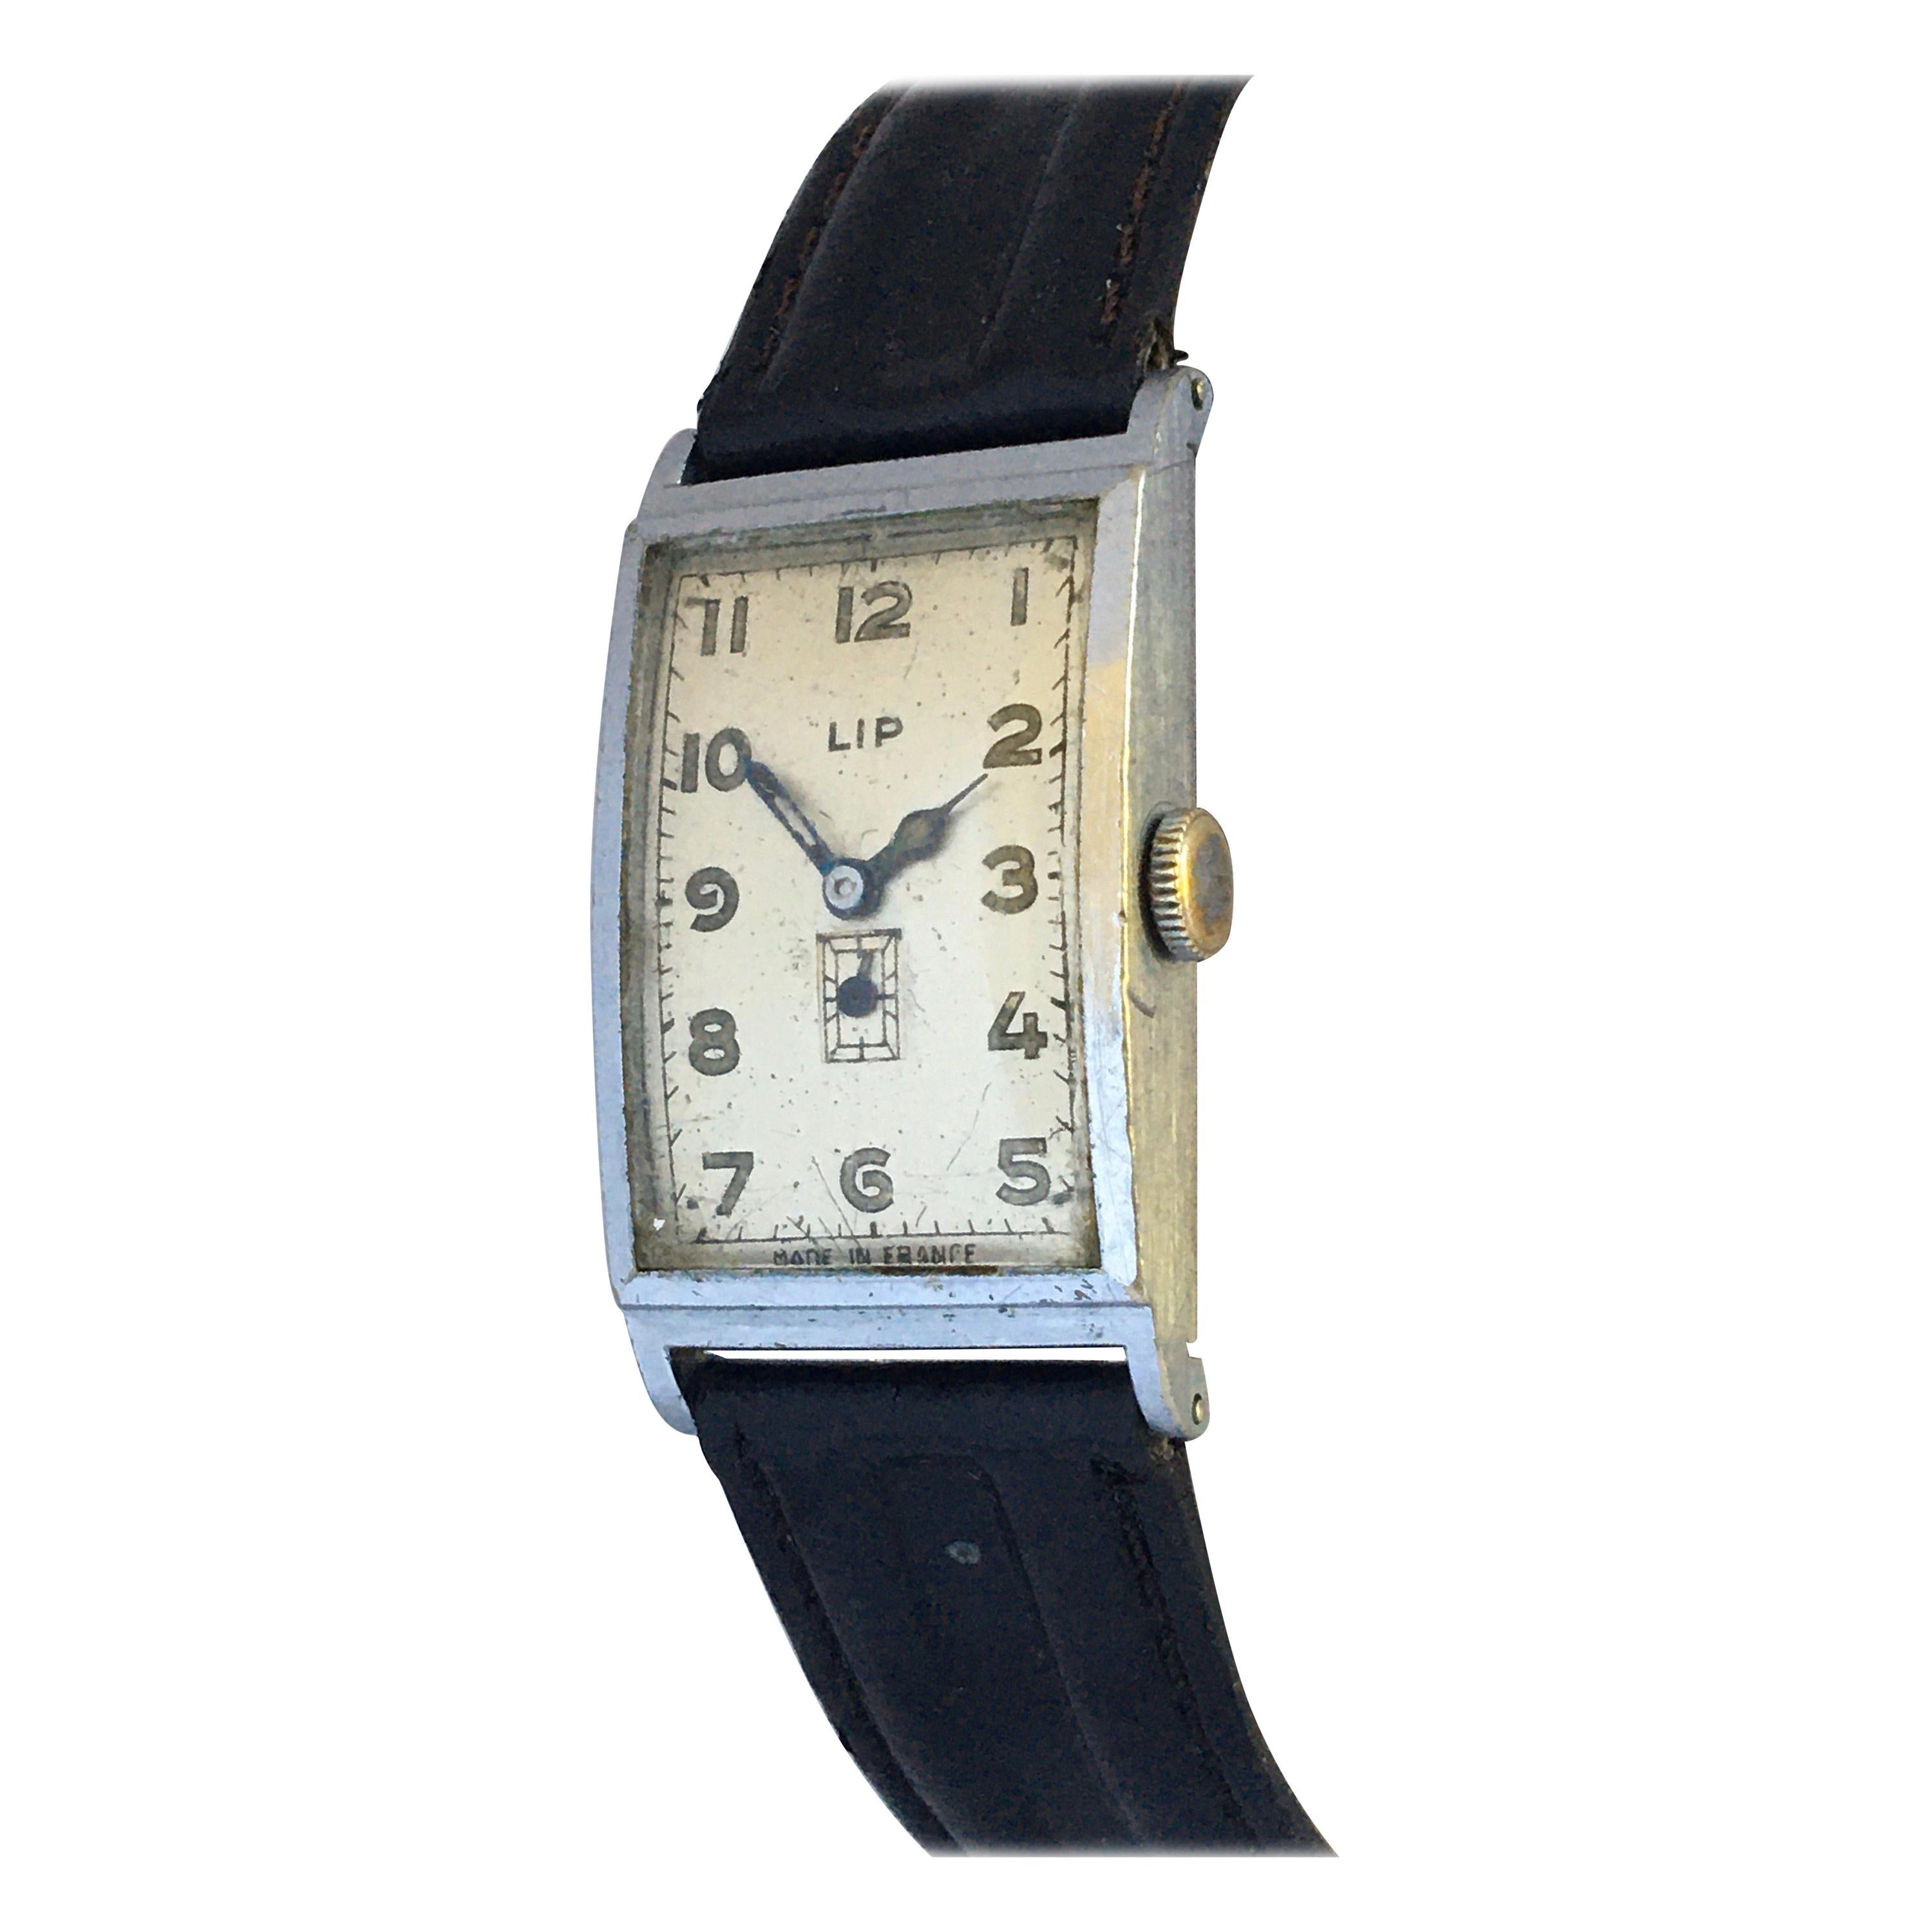 Vintage 1940s Silver plated LIP Mechanical Watch